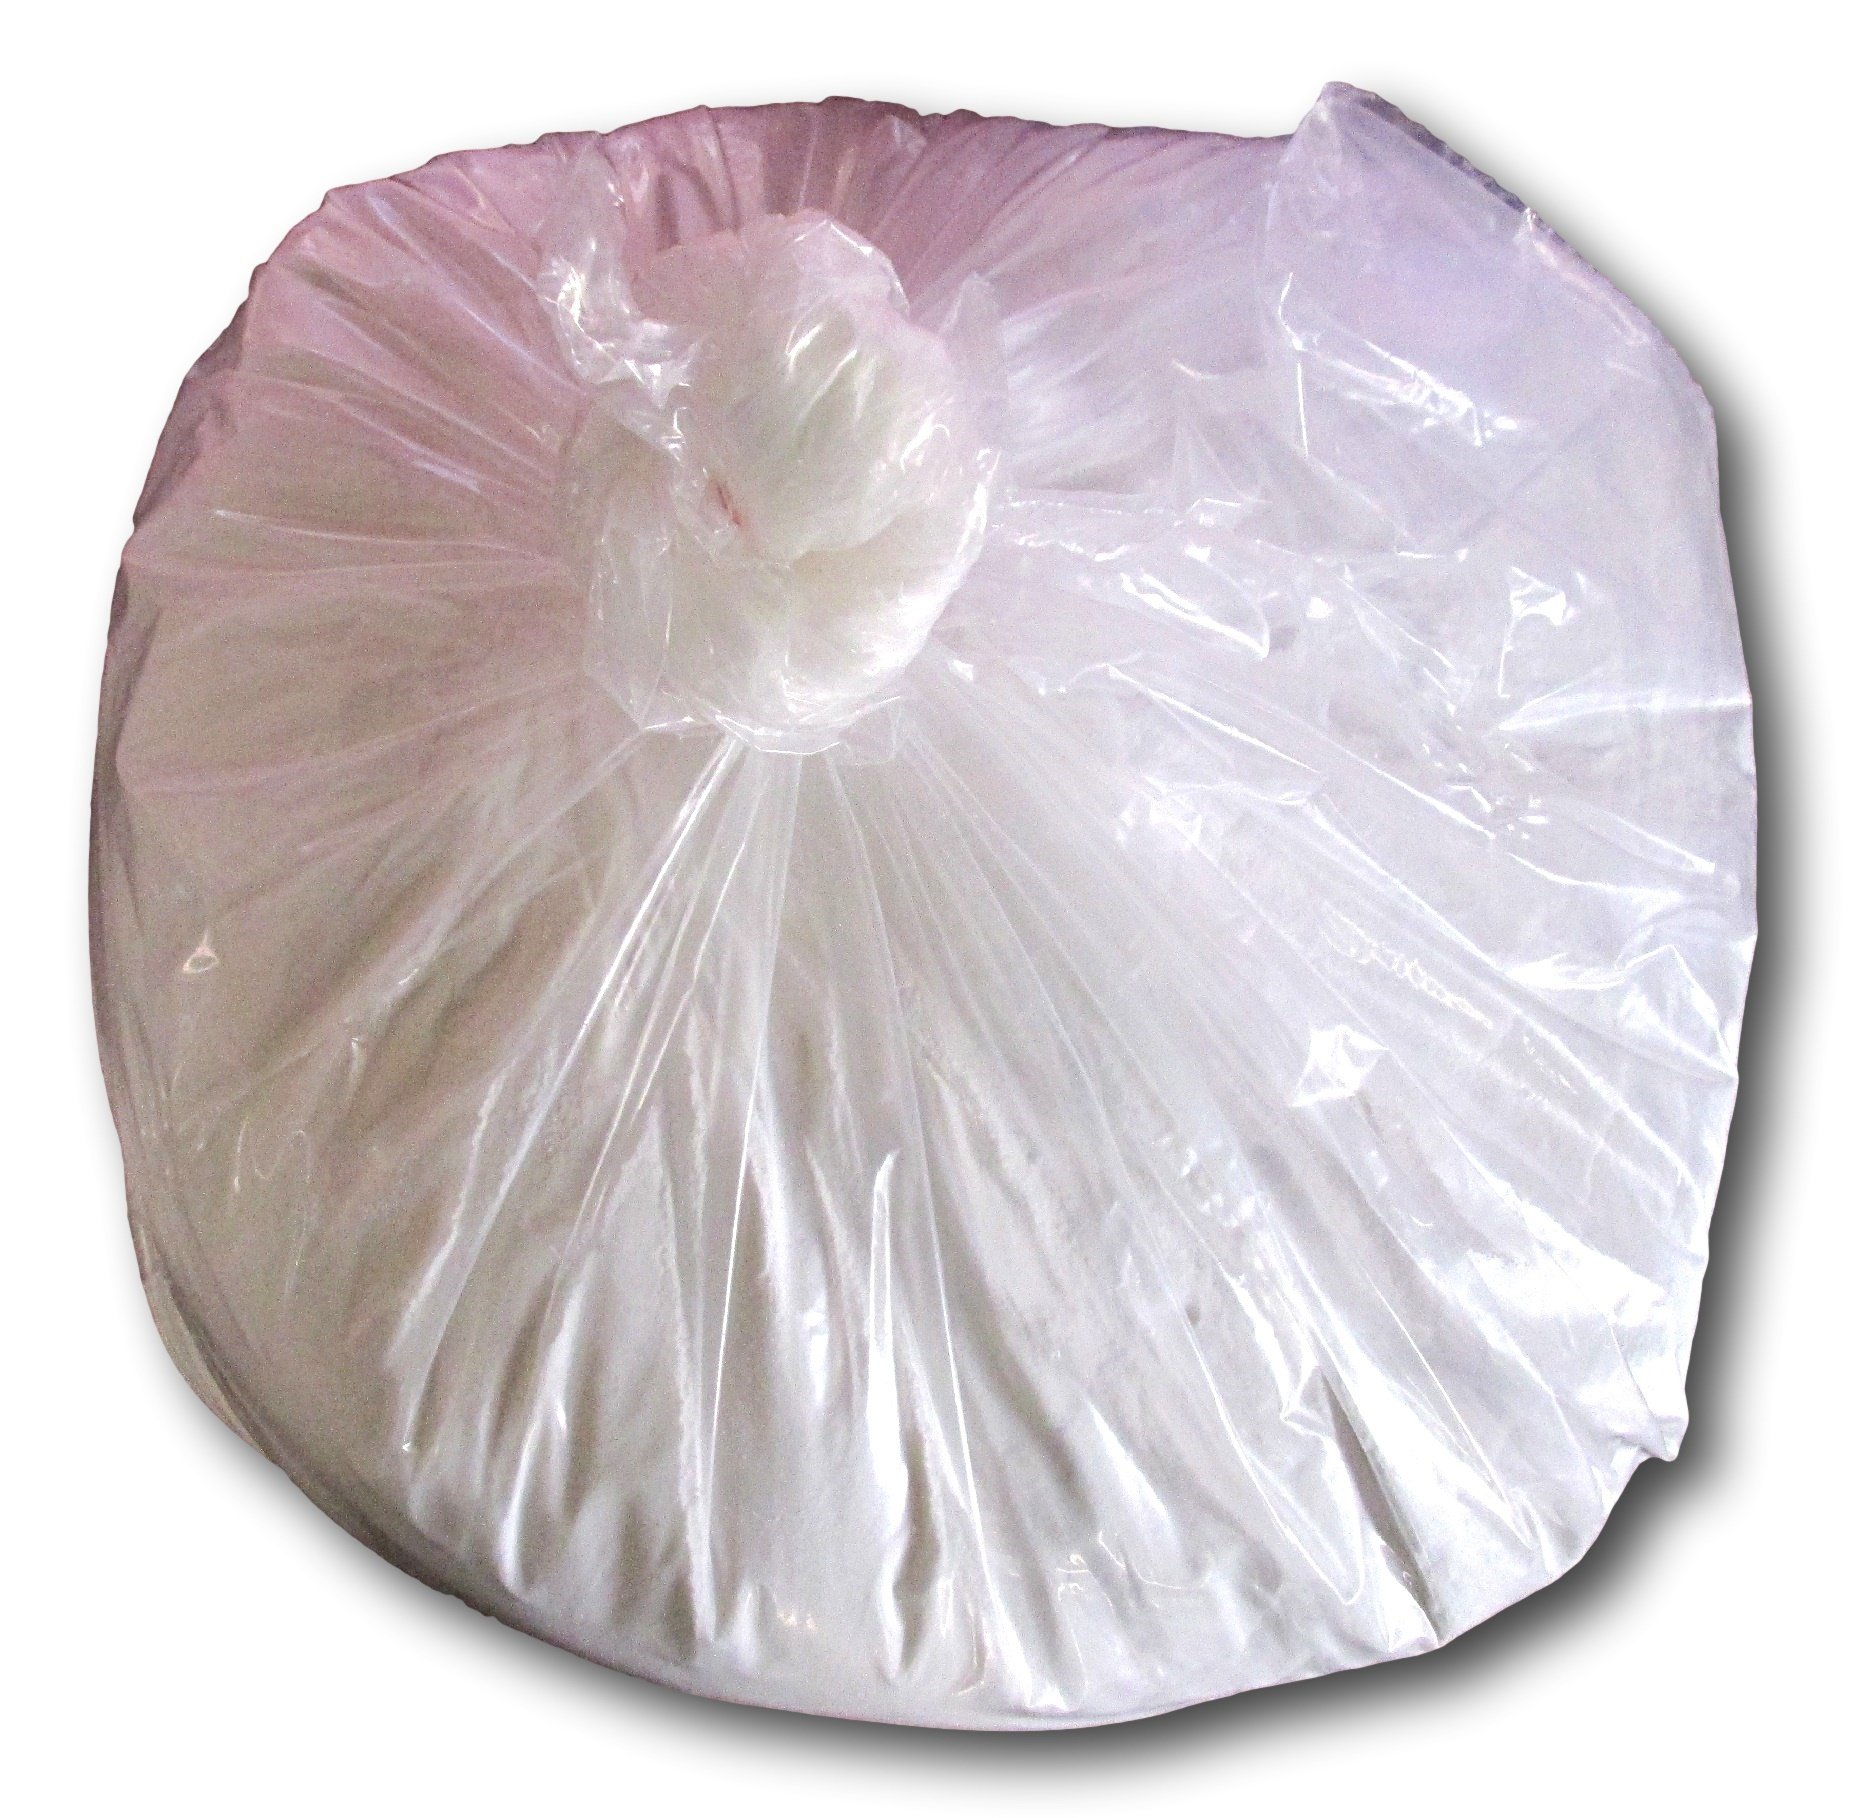 Bulk 50 lb. Bag of Bubble Bandit Dishwasher Detergent. Economical- Up to 800 wash cycles out of every 50 lb. bag.